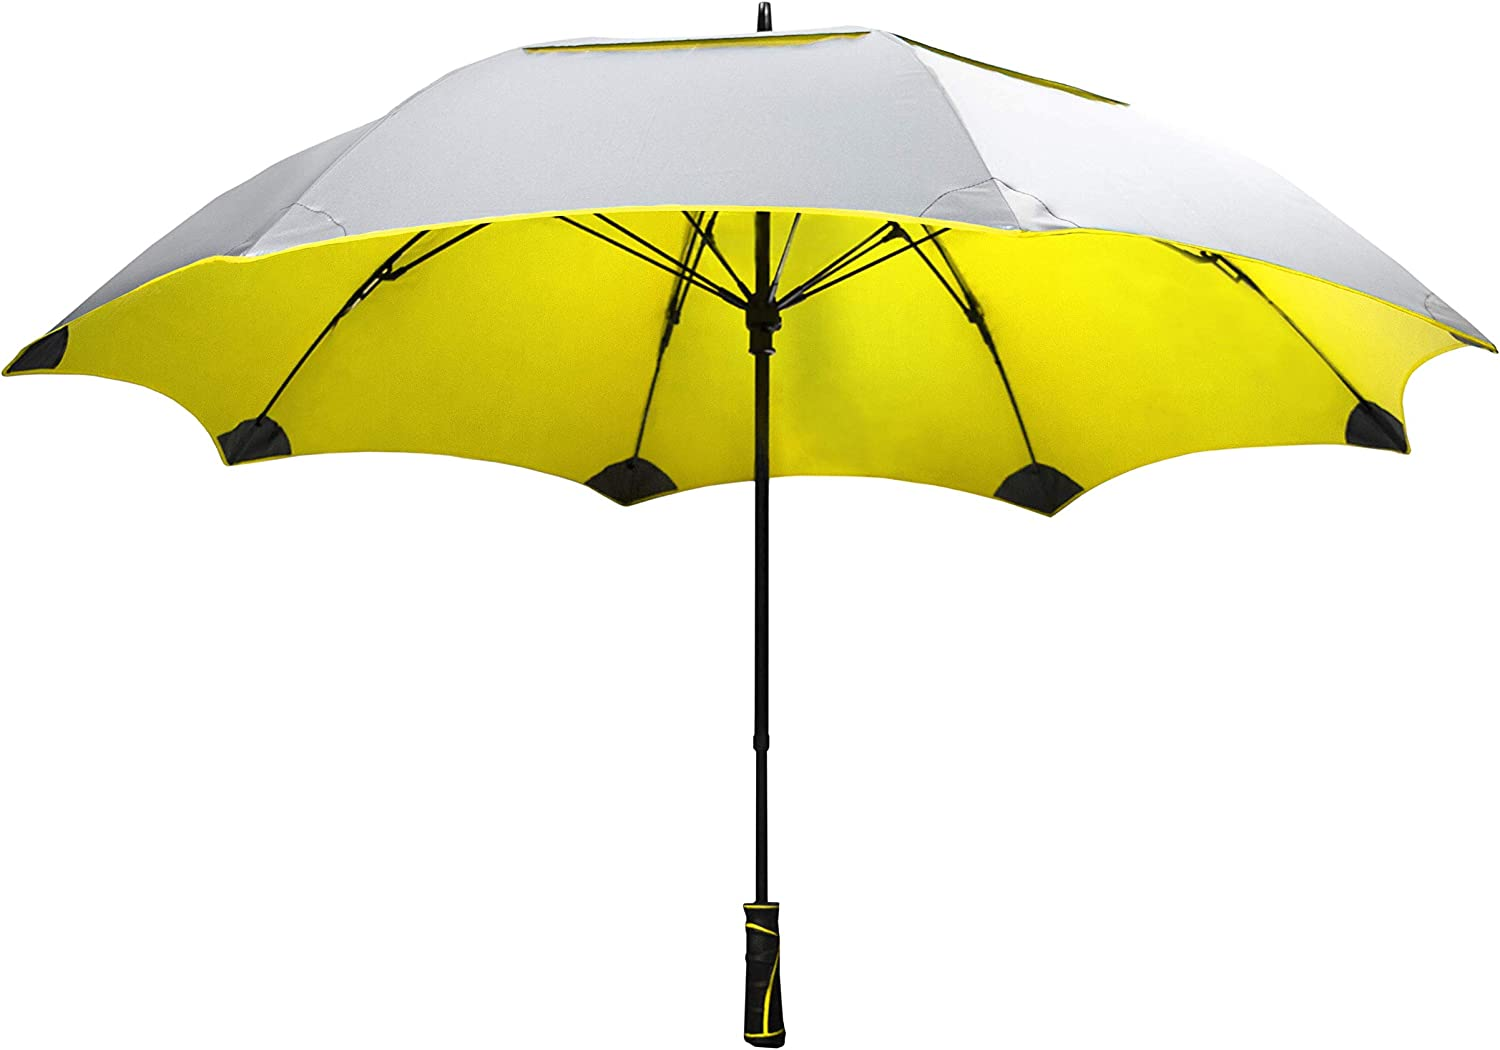 SunTek Solaire 62 Reflective UV Sun Protection Wind Weather Resistant Vented Double-Canopy Umbrella Yellow